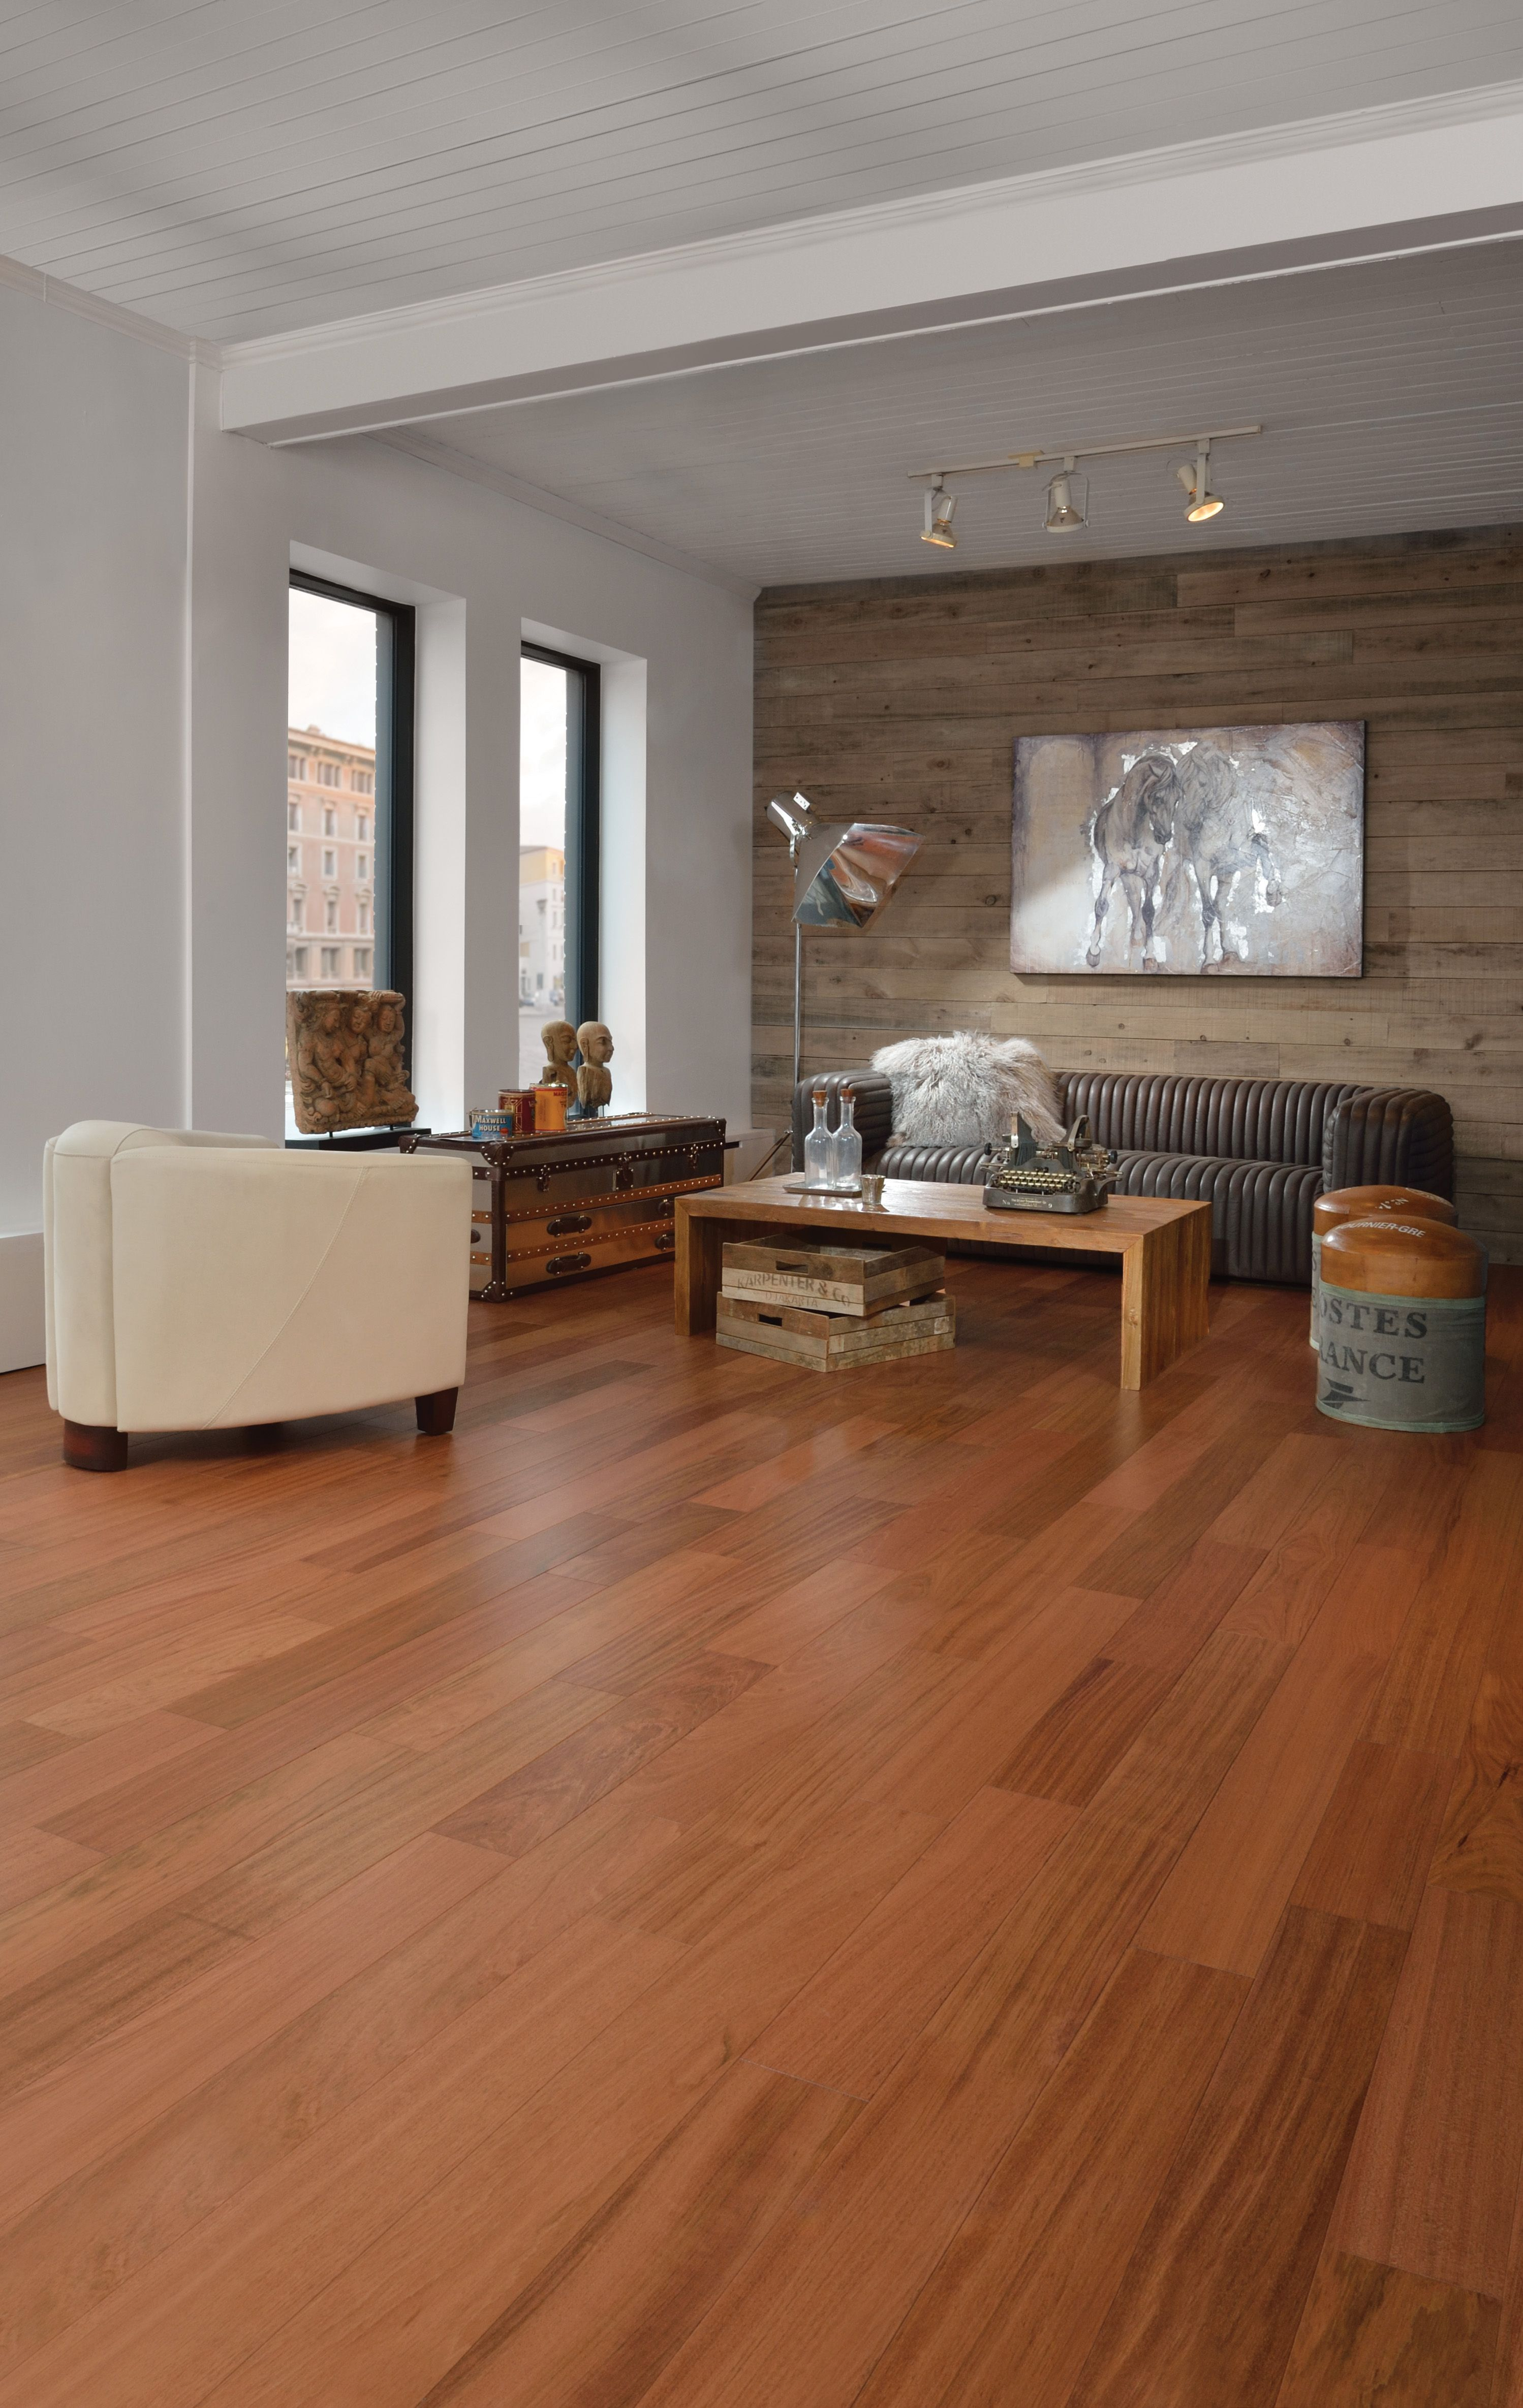 Visit Signature Carpet One Floor Home To Learn More About Mirage Hardwood Floors